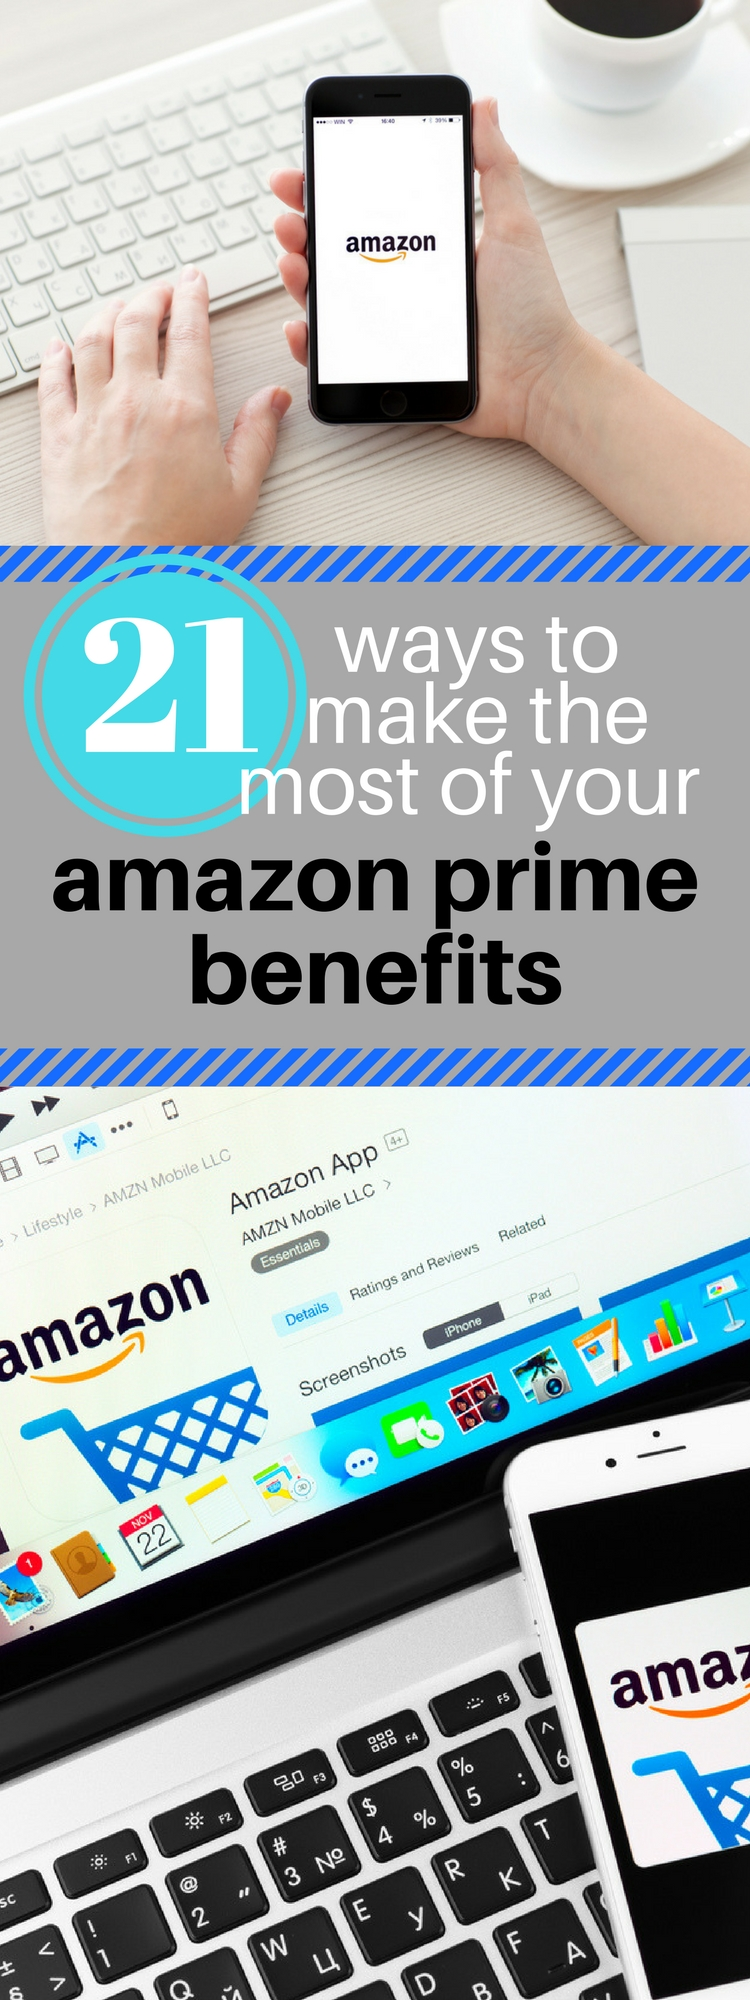 21 Ways to make the most of your Amazon Prime benefits. Get the most out of Amazon Prime. All the benefits of Amazon Prime.